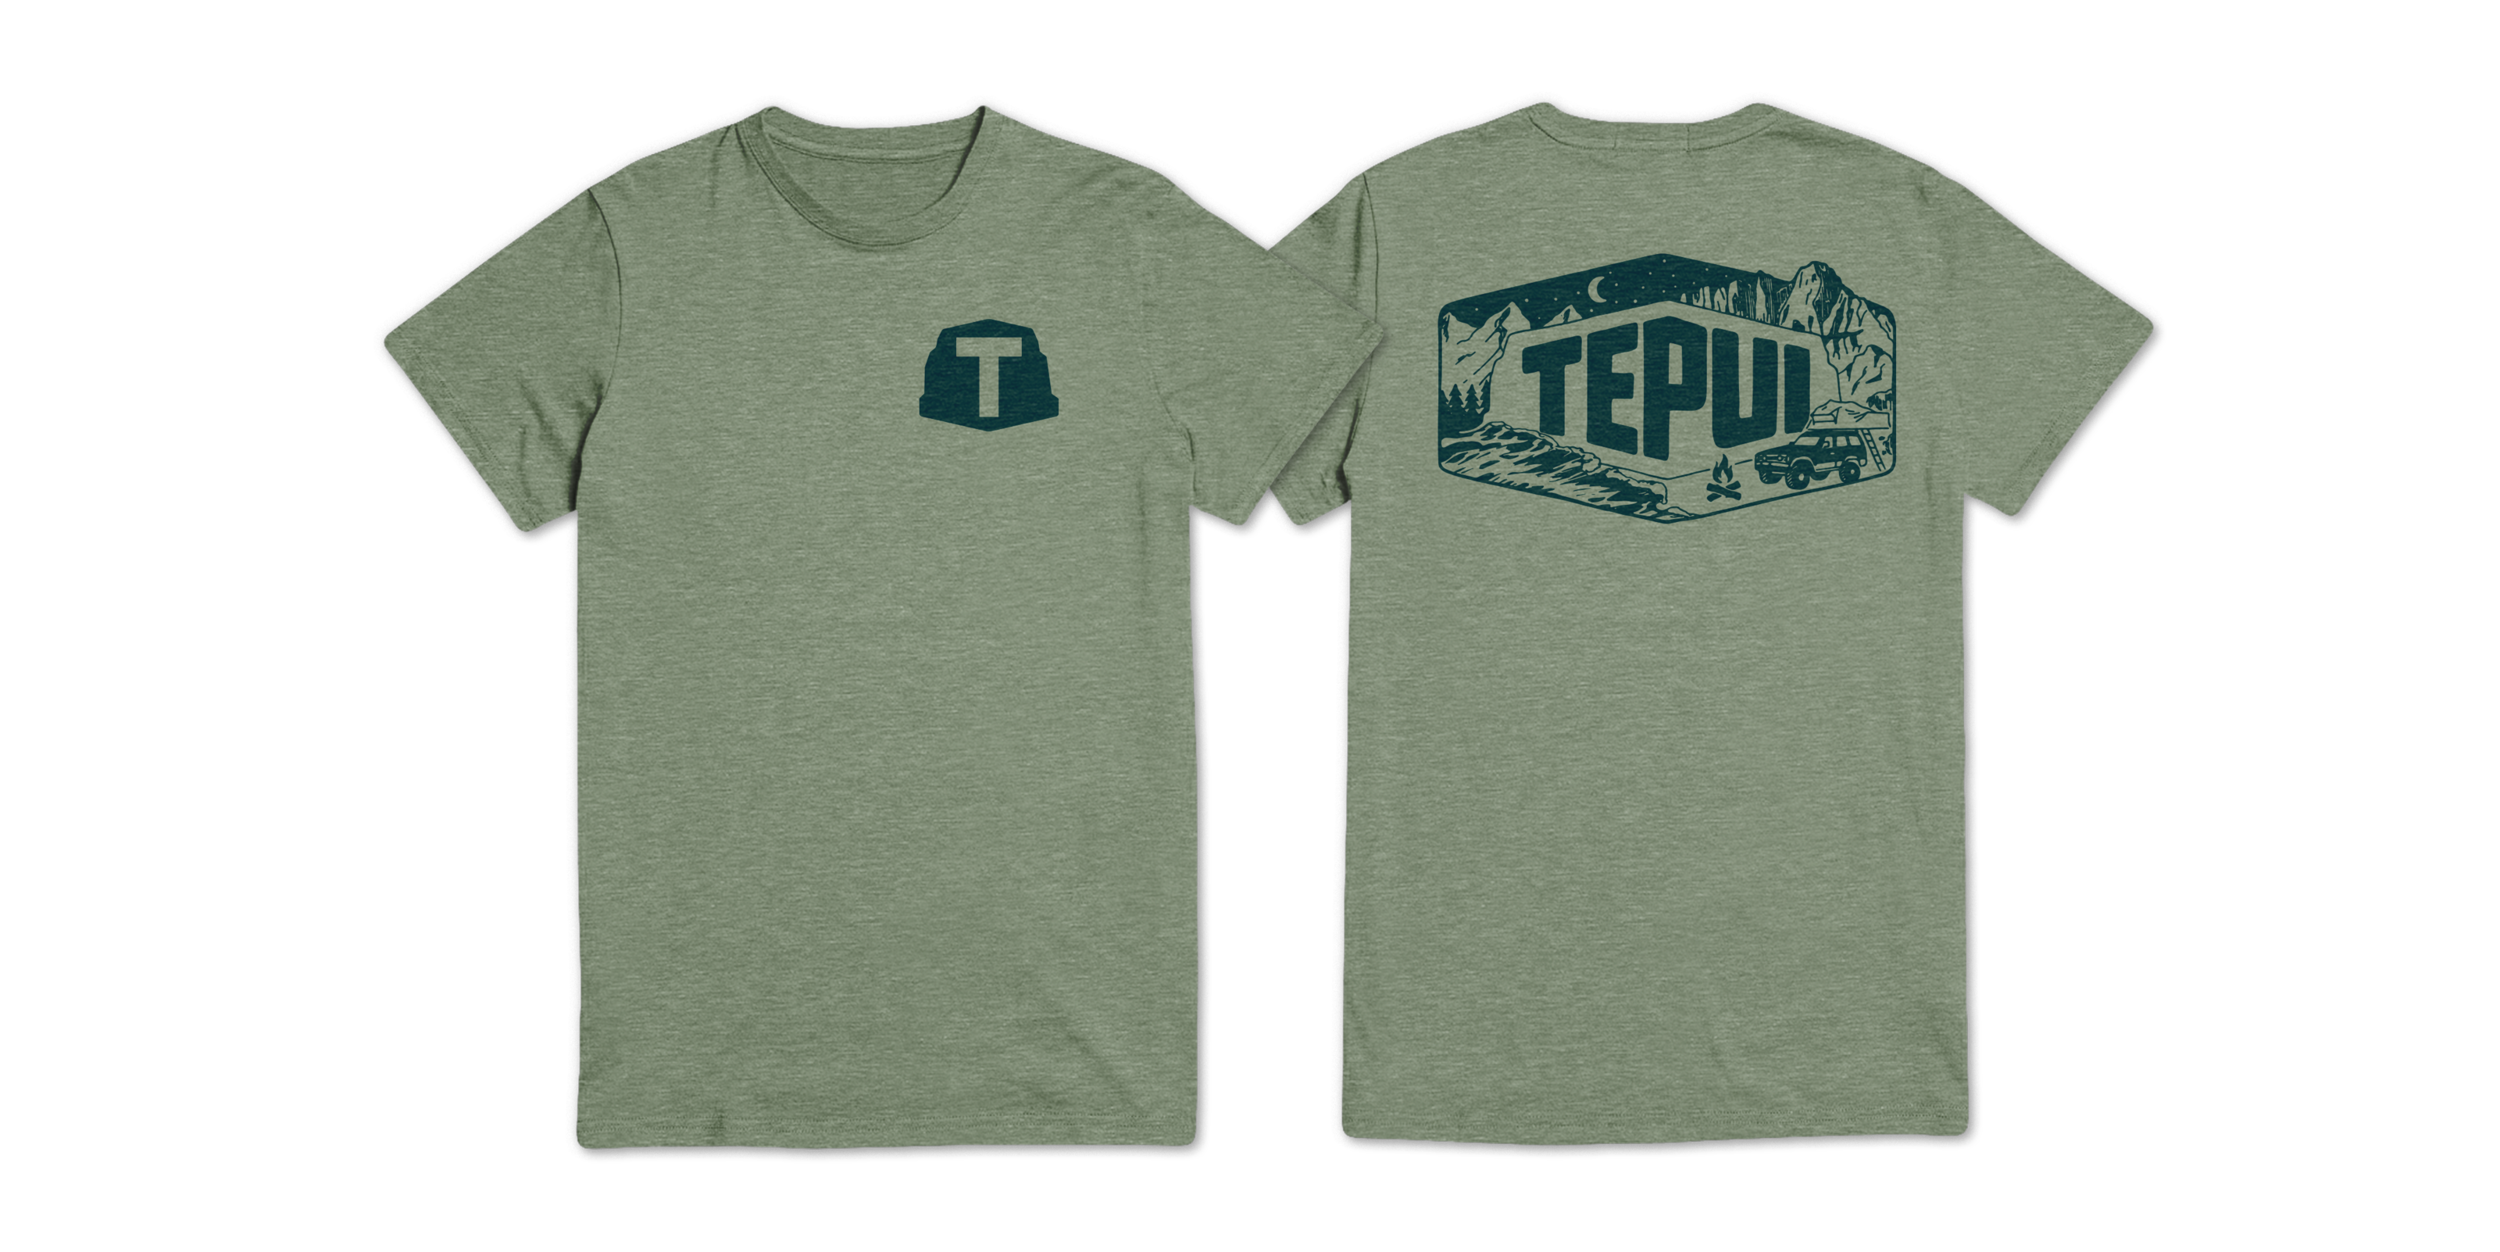 Tepui_Off-the-grid_Tshirt-Mock-Up.png